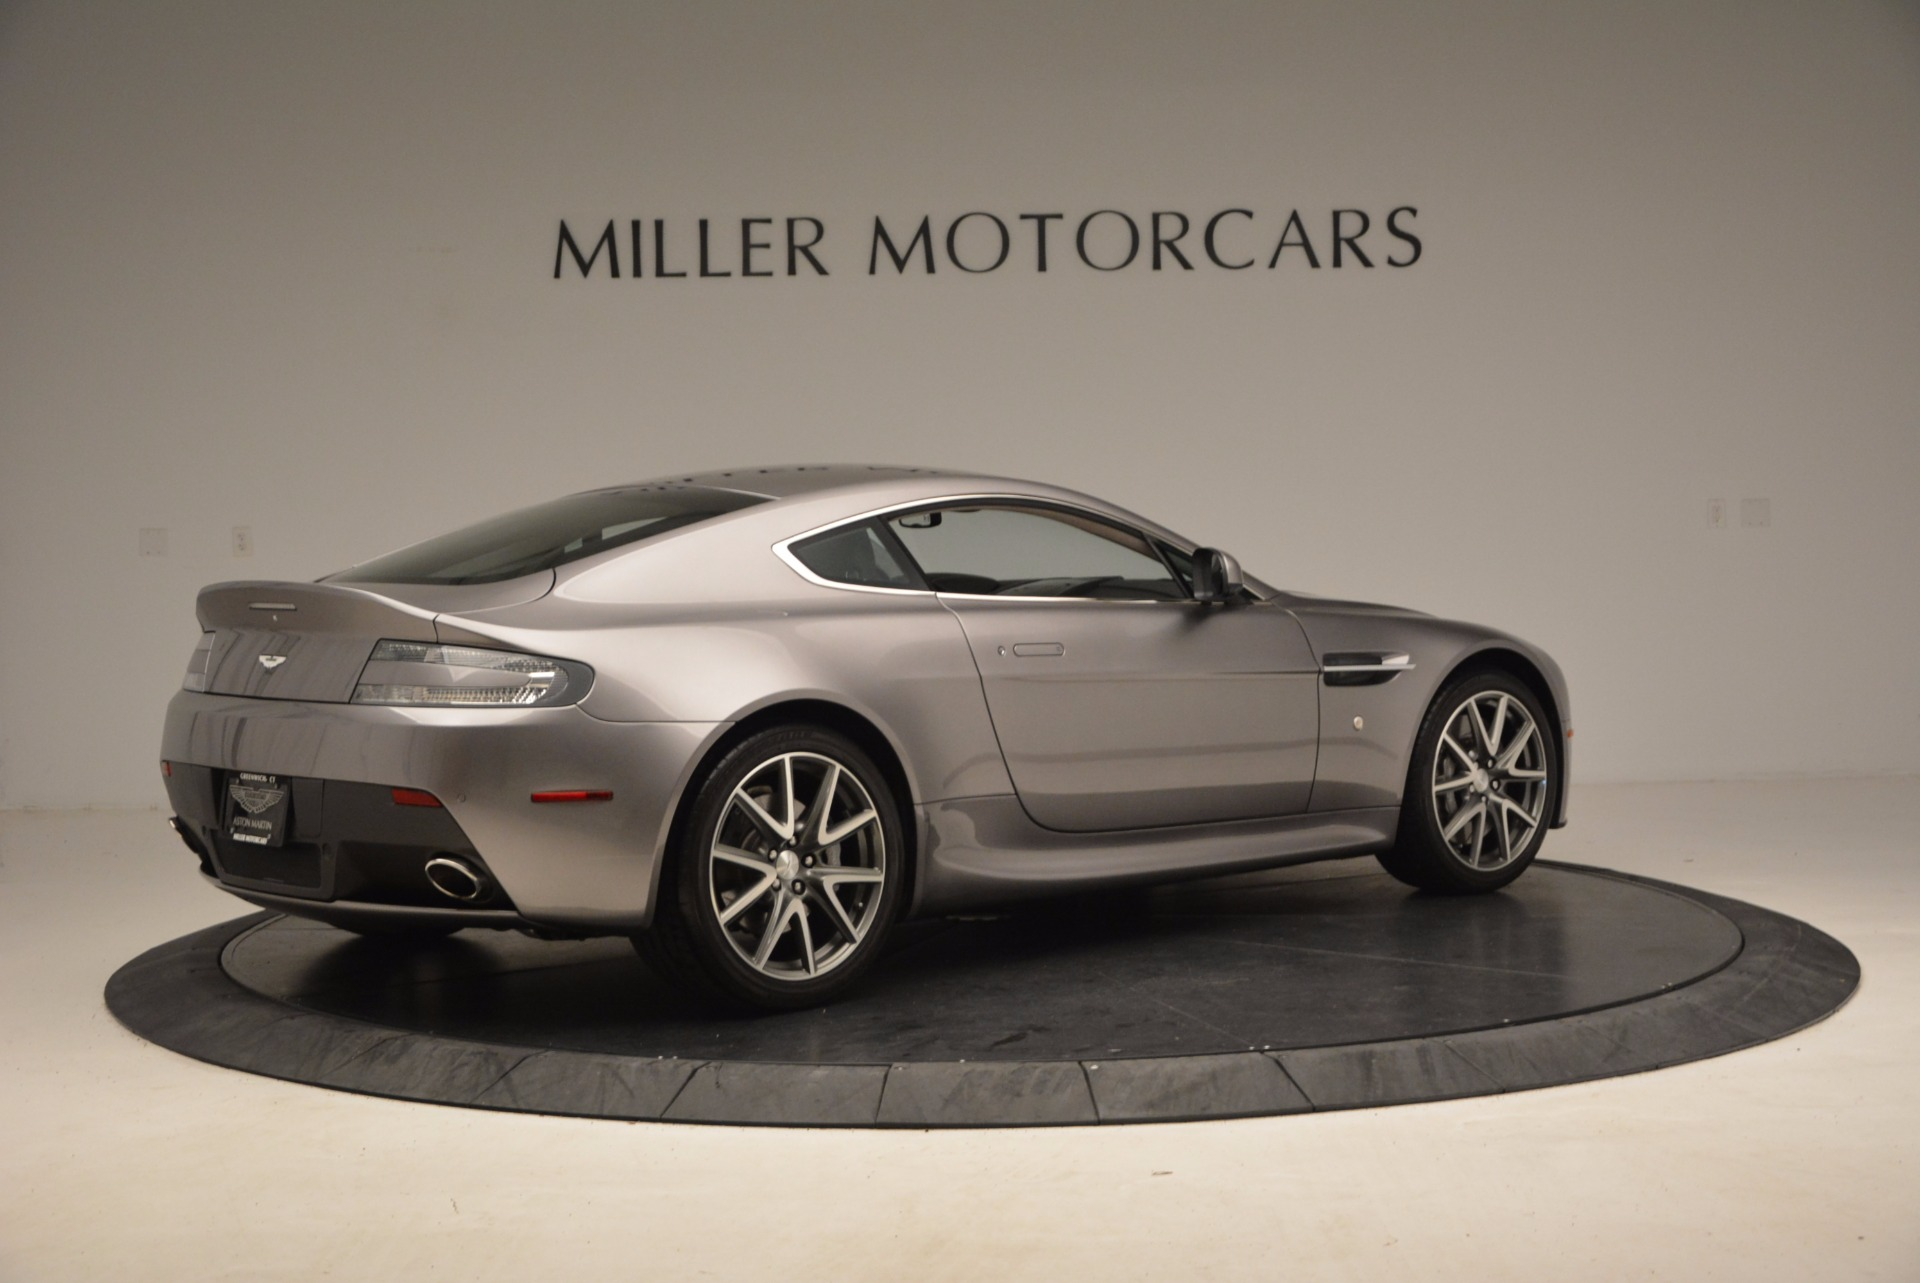 Used 2012 Aston Martin V8 Vantage  For Sale In Westport, CT 1497_p8